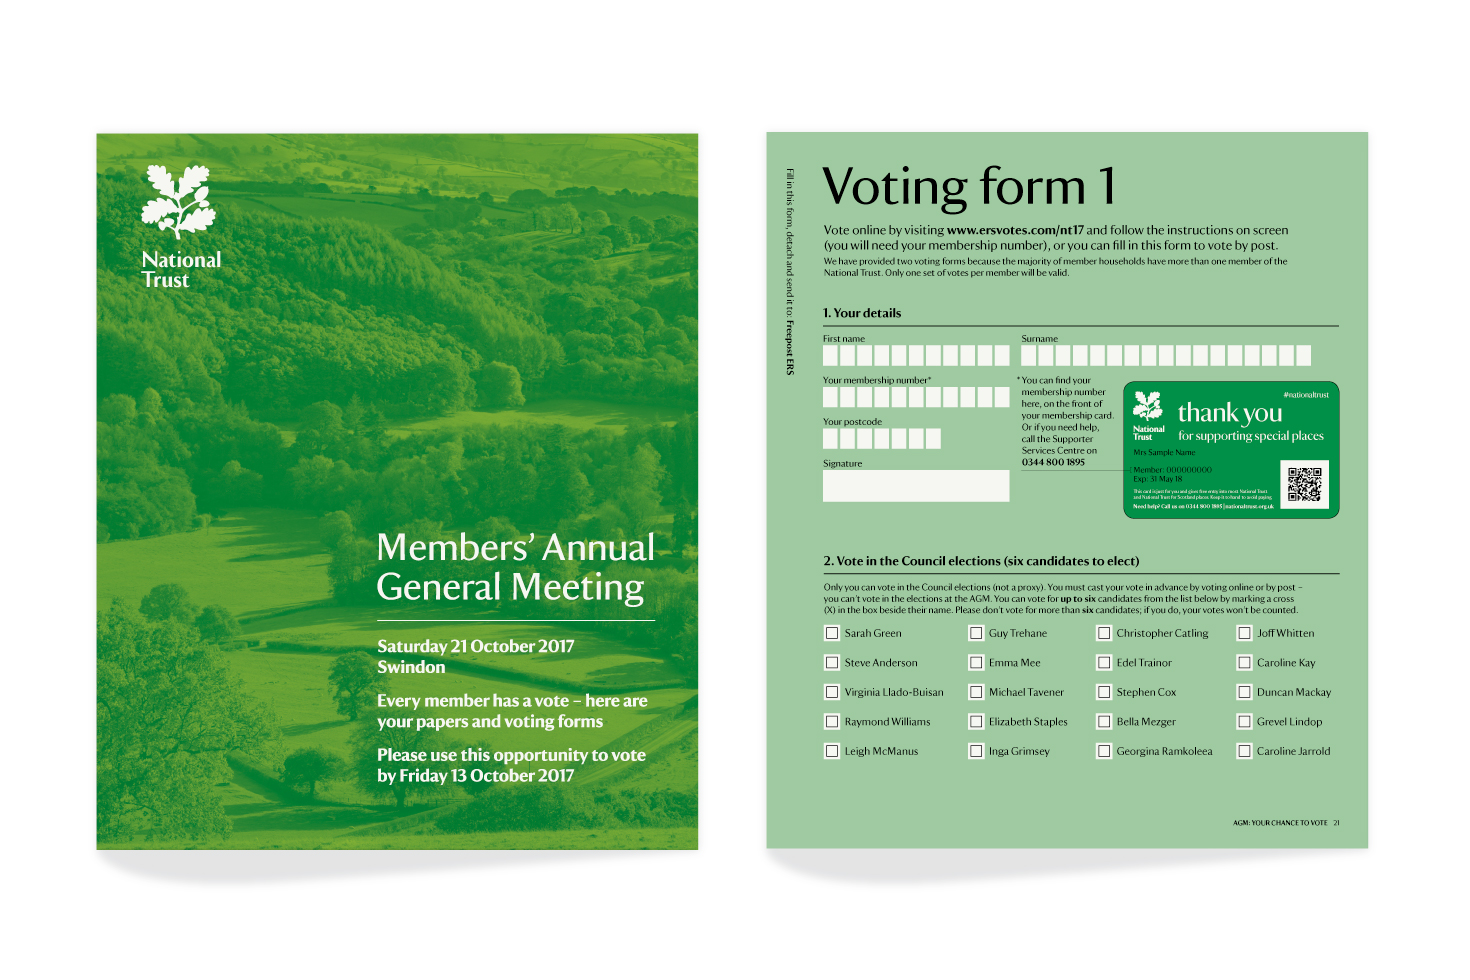 National Trust forms